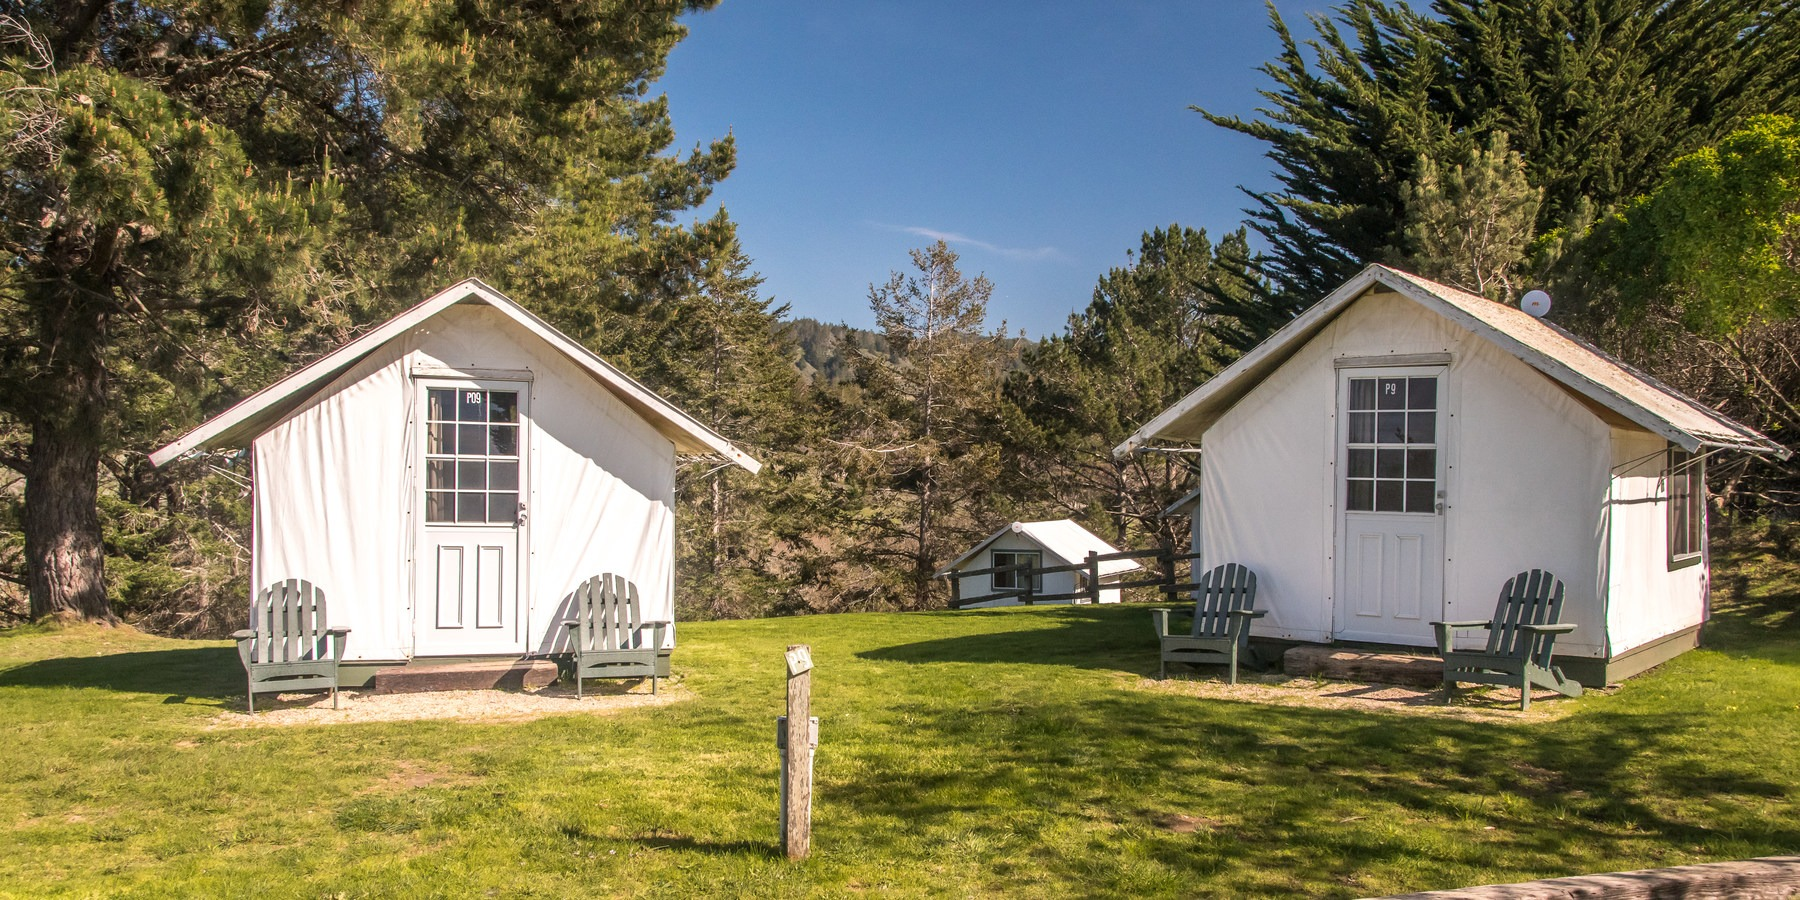 Costanoa Lodge; A few of the many tent cabins available. & Costanoa Lodge | Outdoor Project